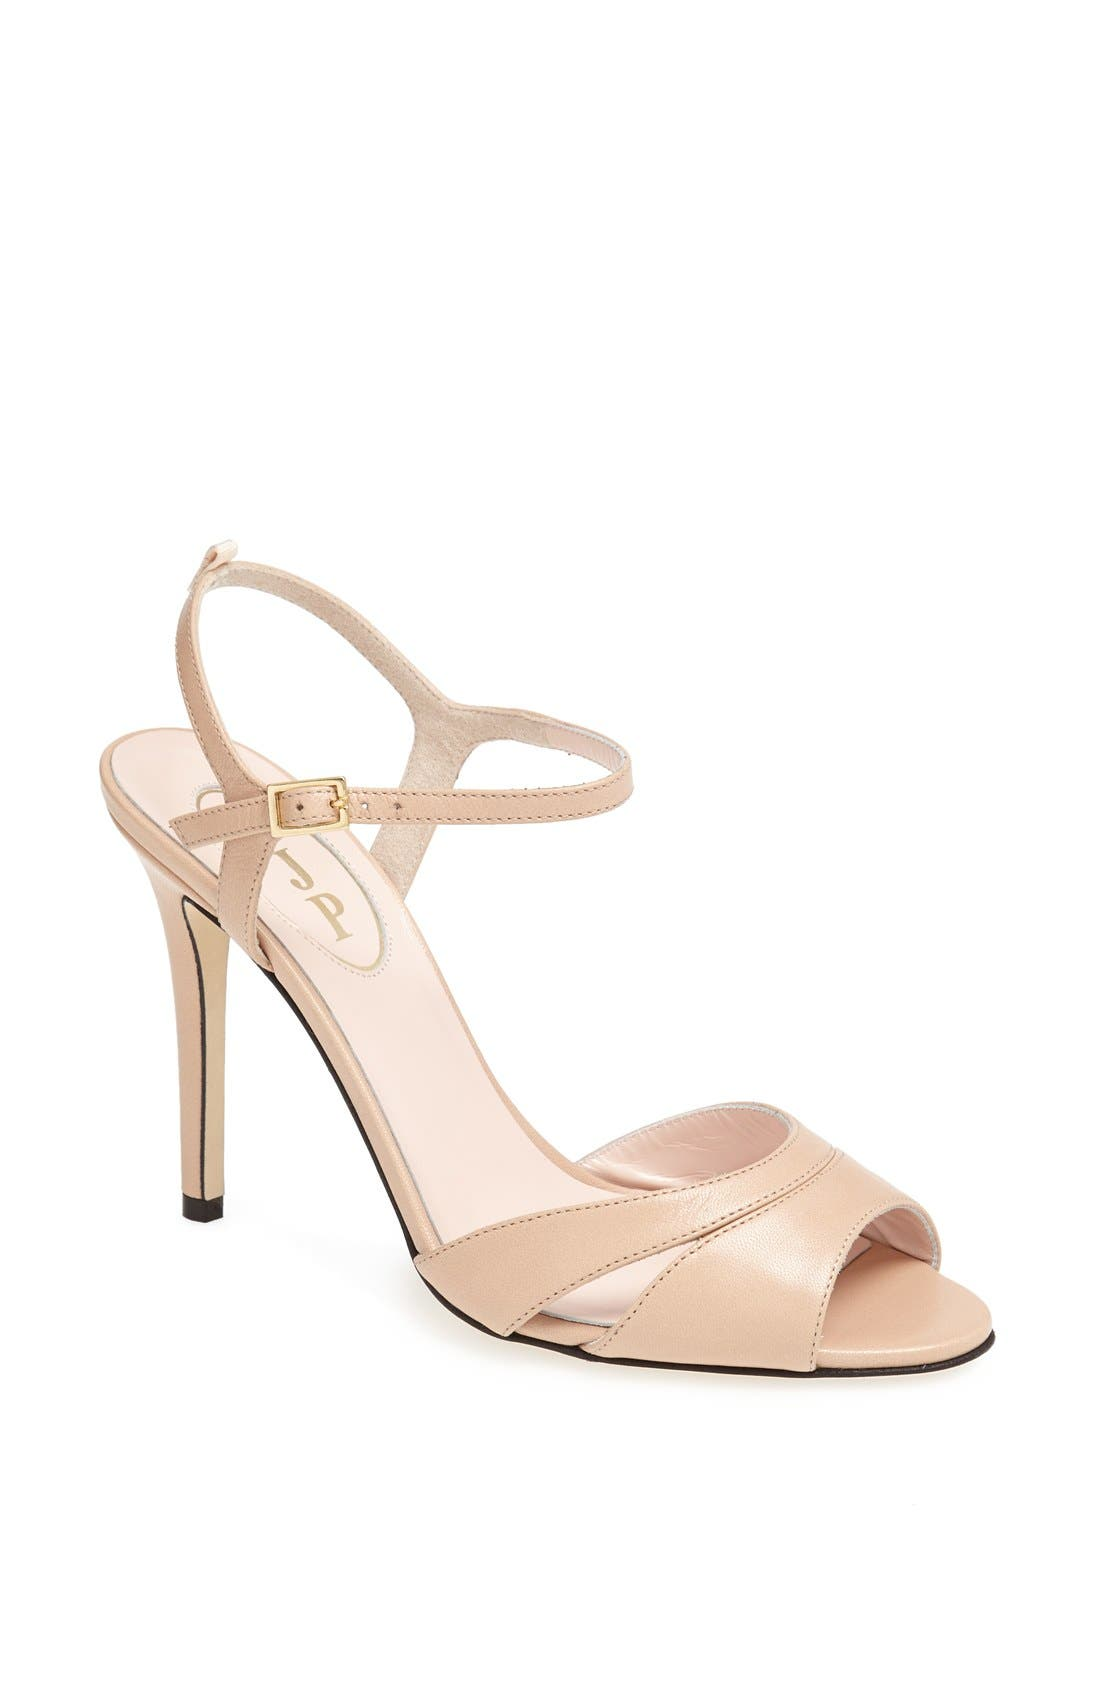 Main Image - SJP 'Anna' Sandal (Nordstrom Exclusive)